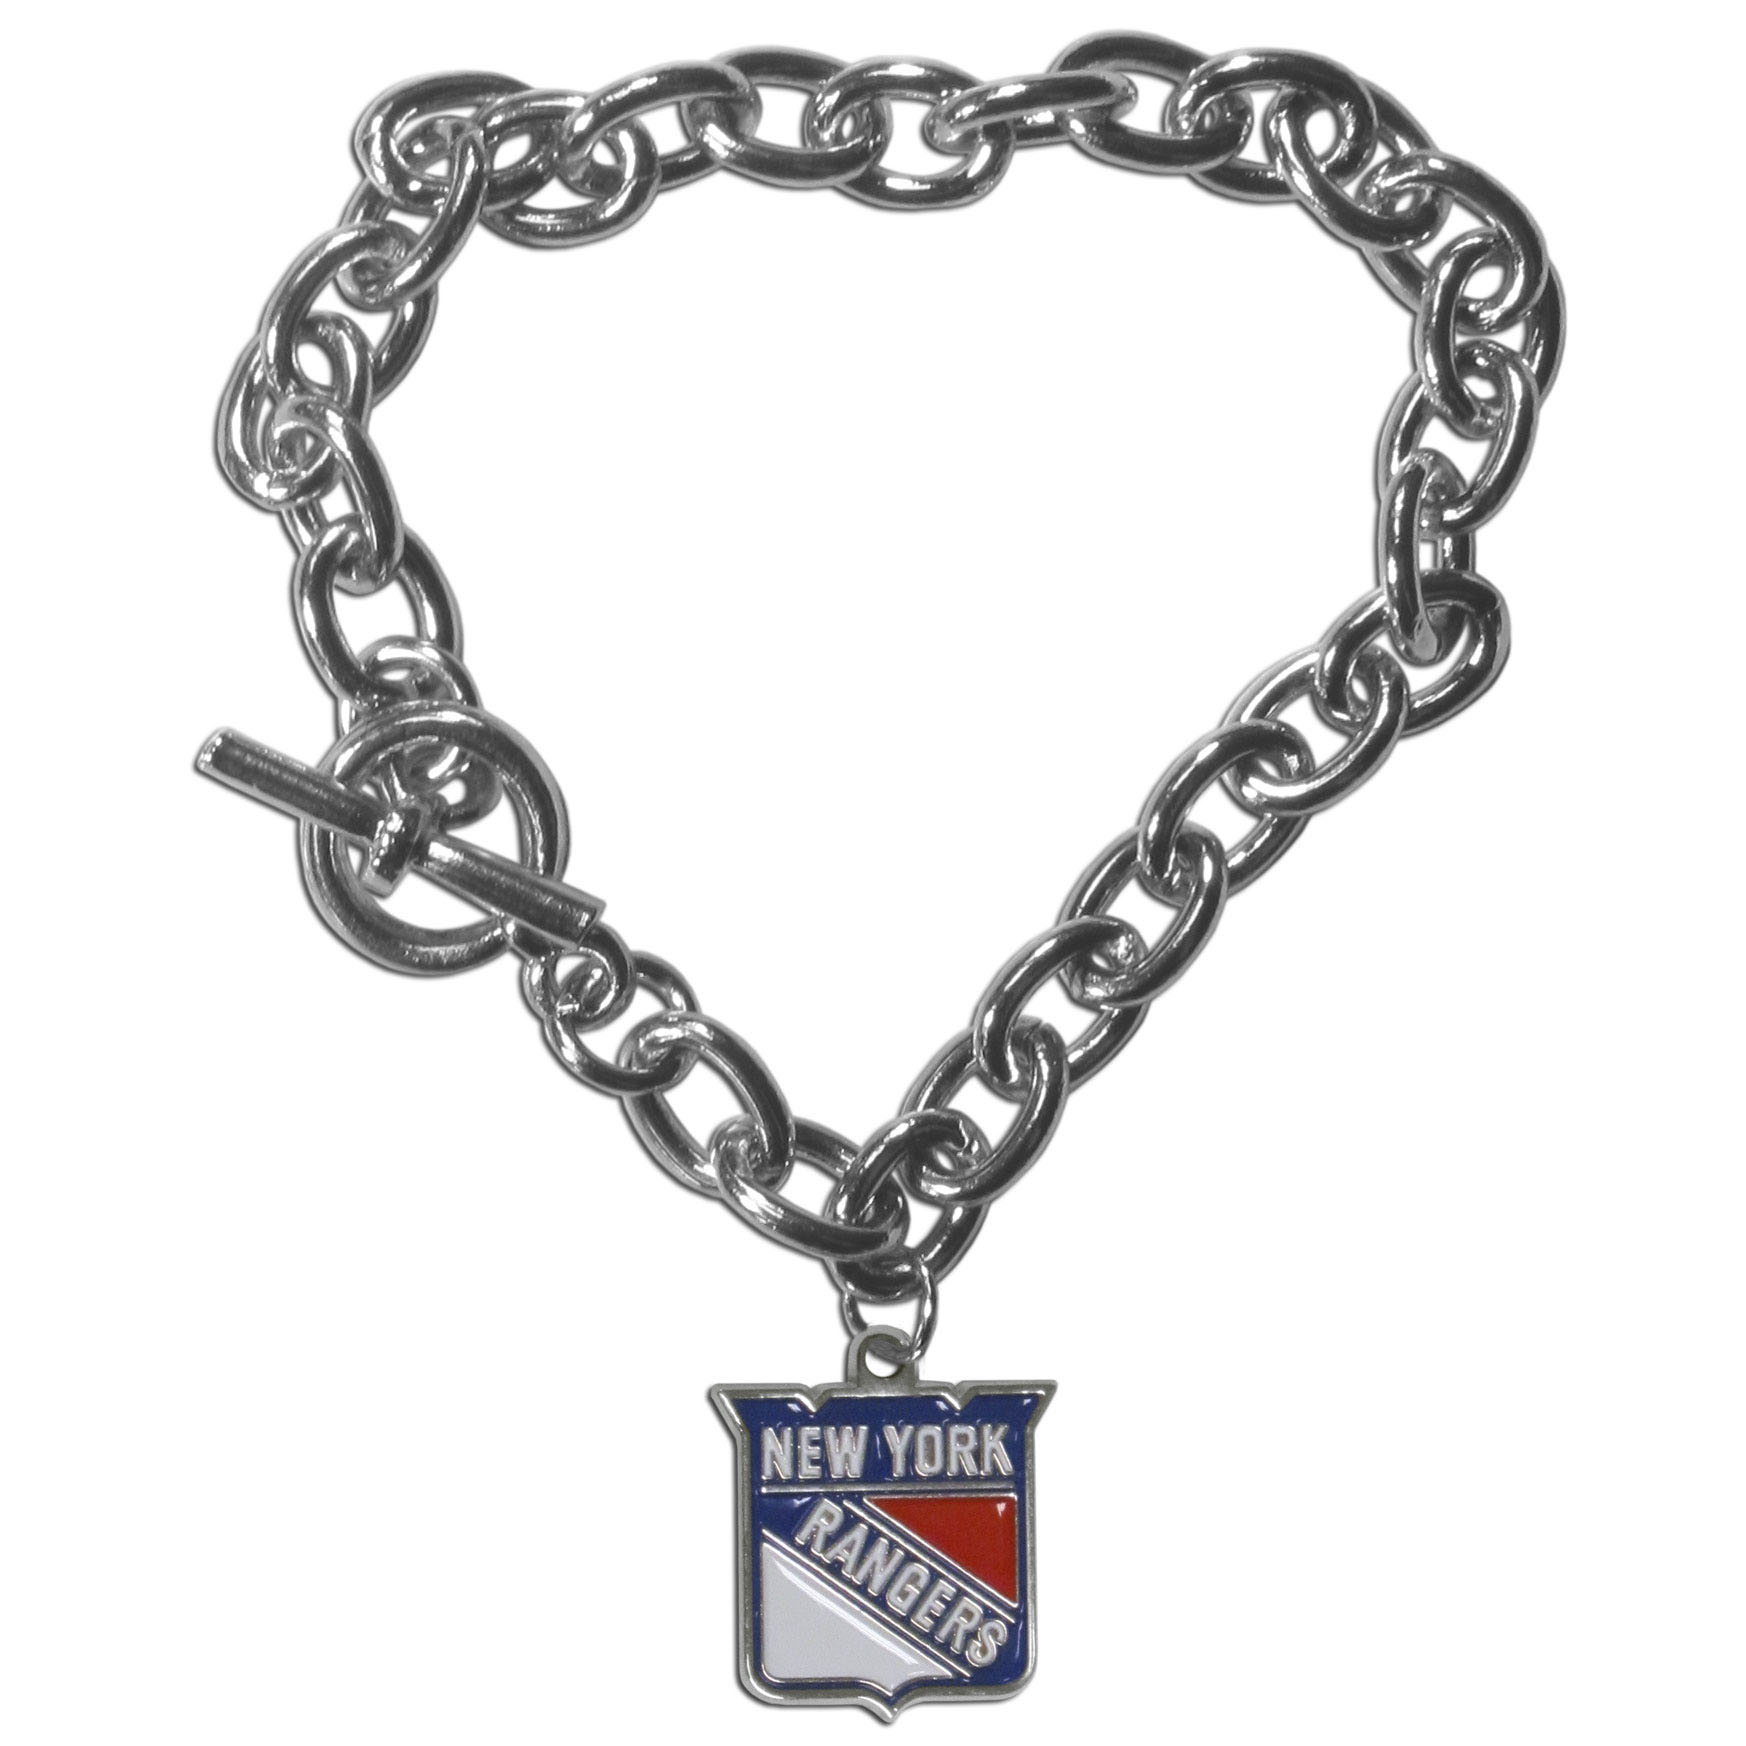 New York Rangers® Charm Chain Bracelet - Our classic single charm bracelet is a great way to show off your team pride! The 7.5 inch large link chain features a high polish New York Rangers® charm and features a toggle clasp which makes it super easy to take on and off.